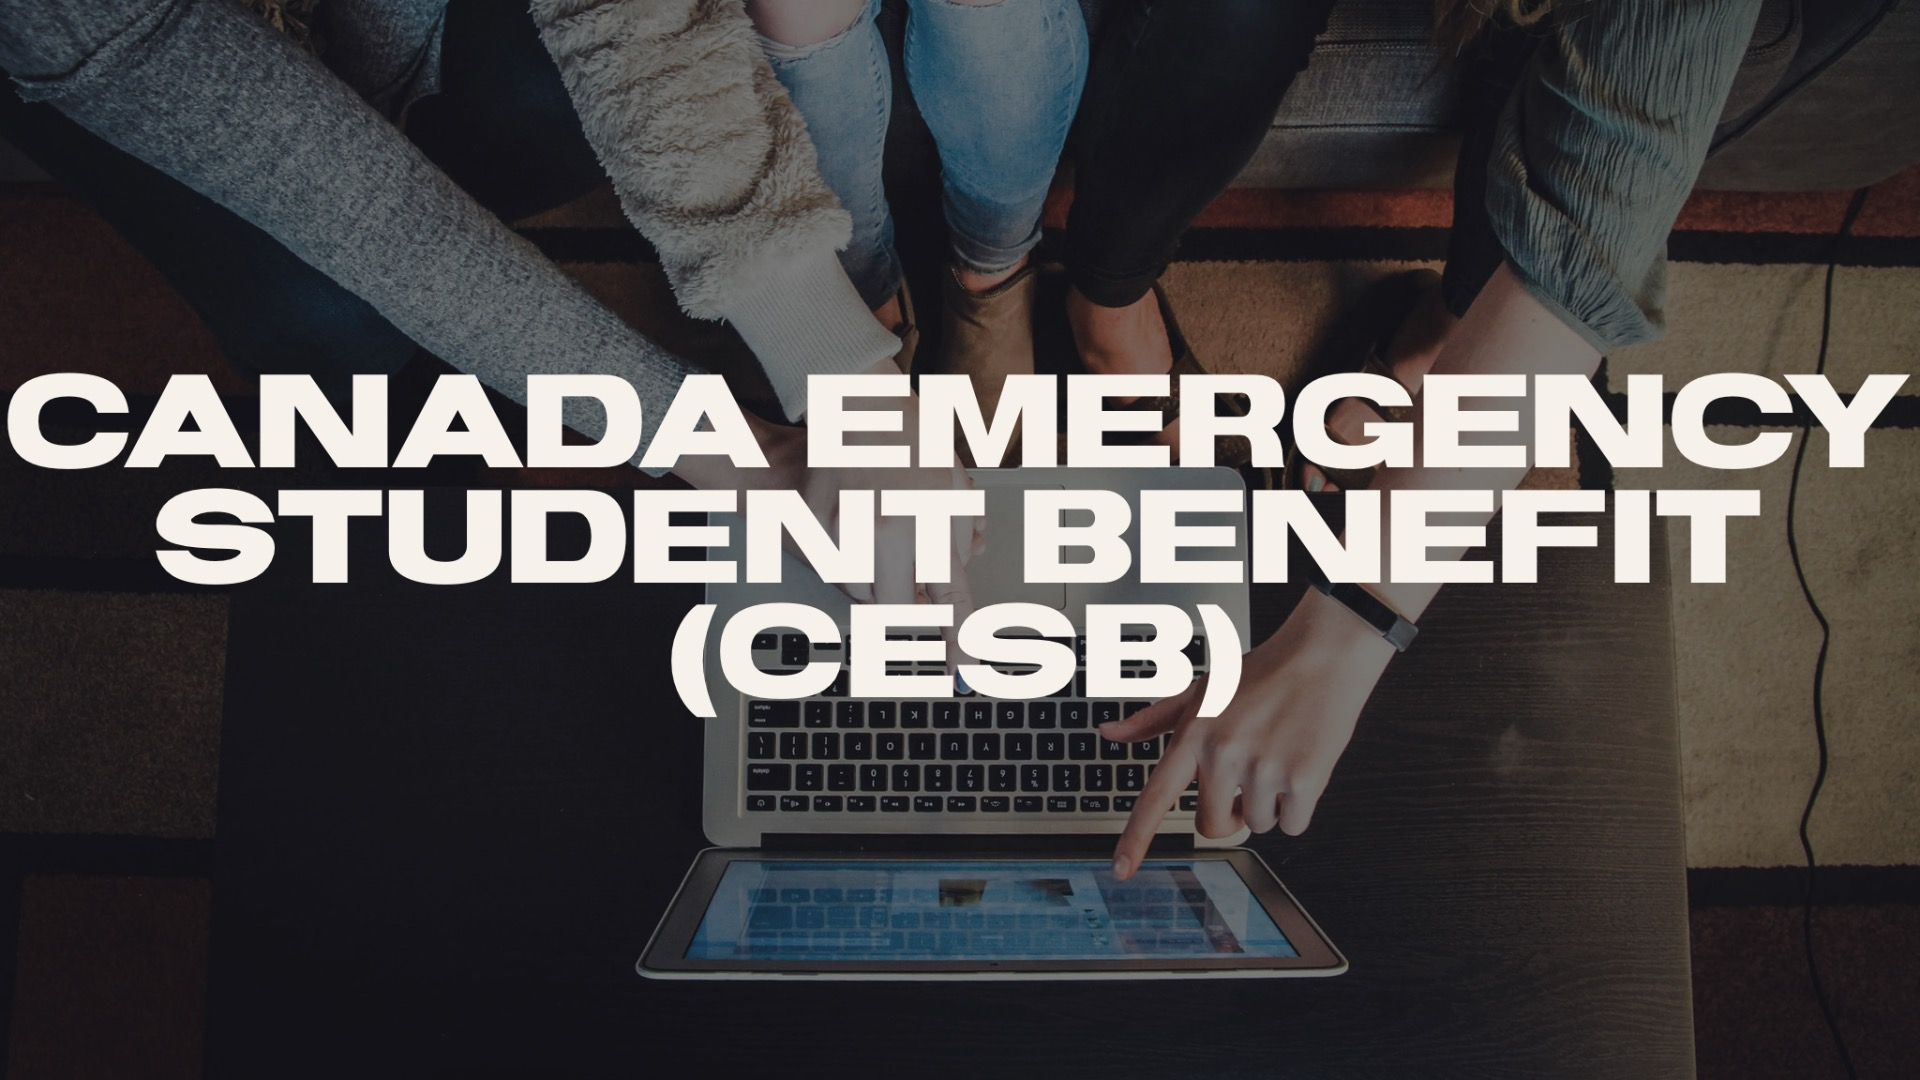 Canada Emergency Student Benefit (CESB) during COVID-19 pandemic